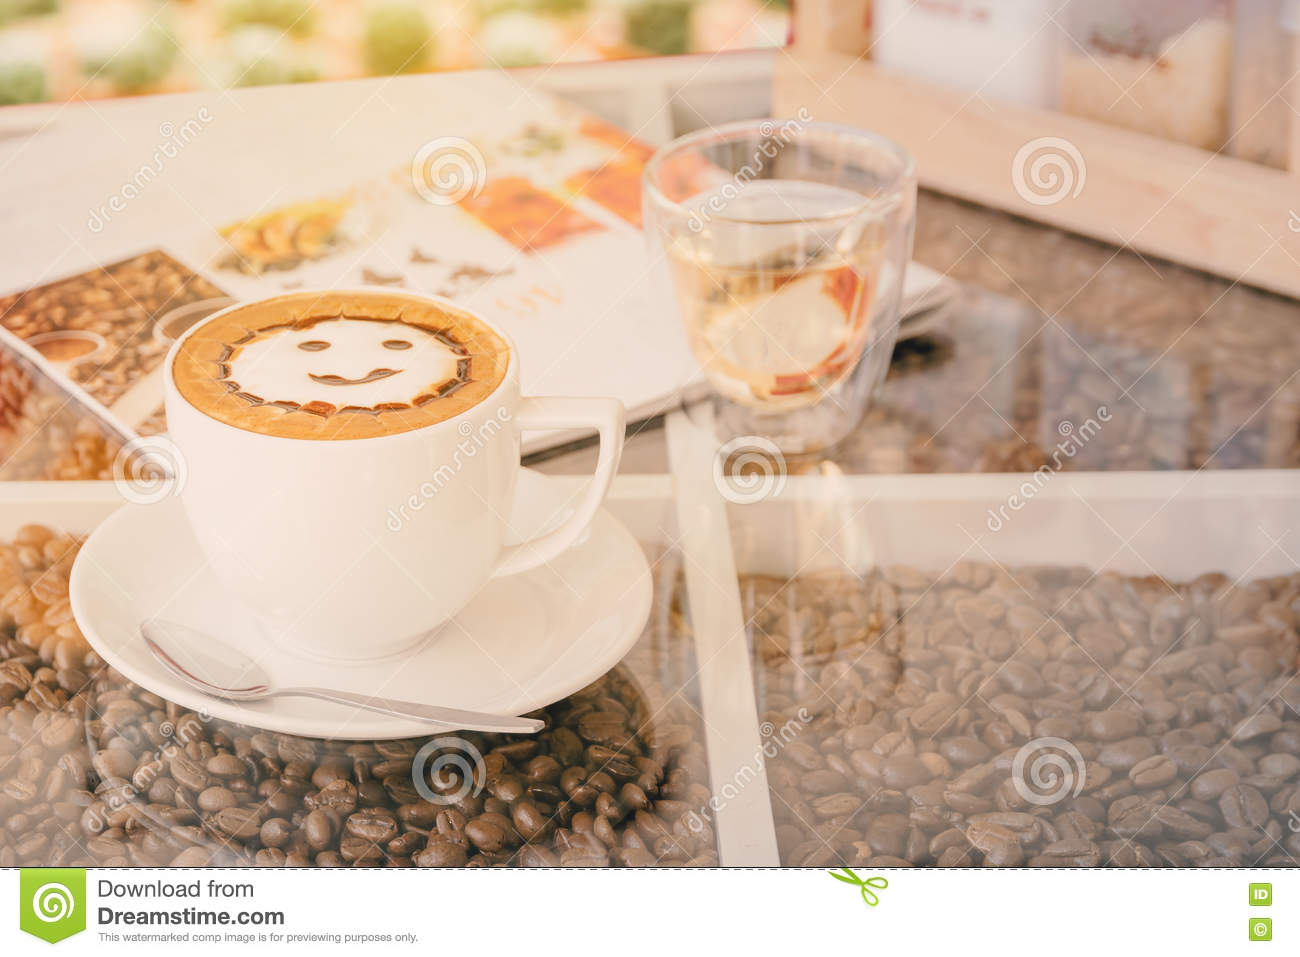 Vintage latte art coffee cup on table stock image image 72950167 vintage latte art coffee cup on table geotapseo Gallery